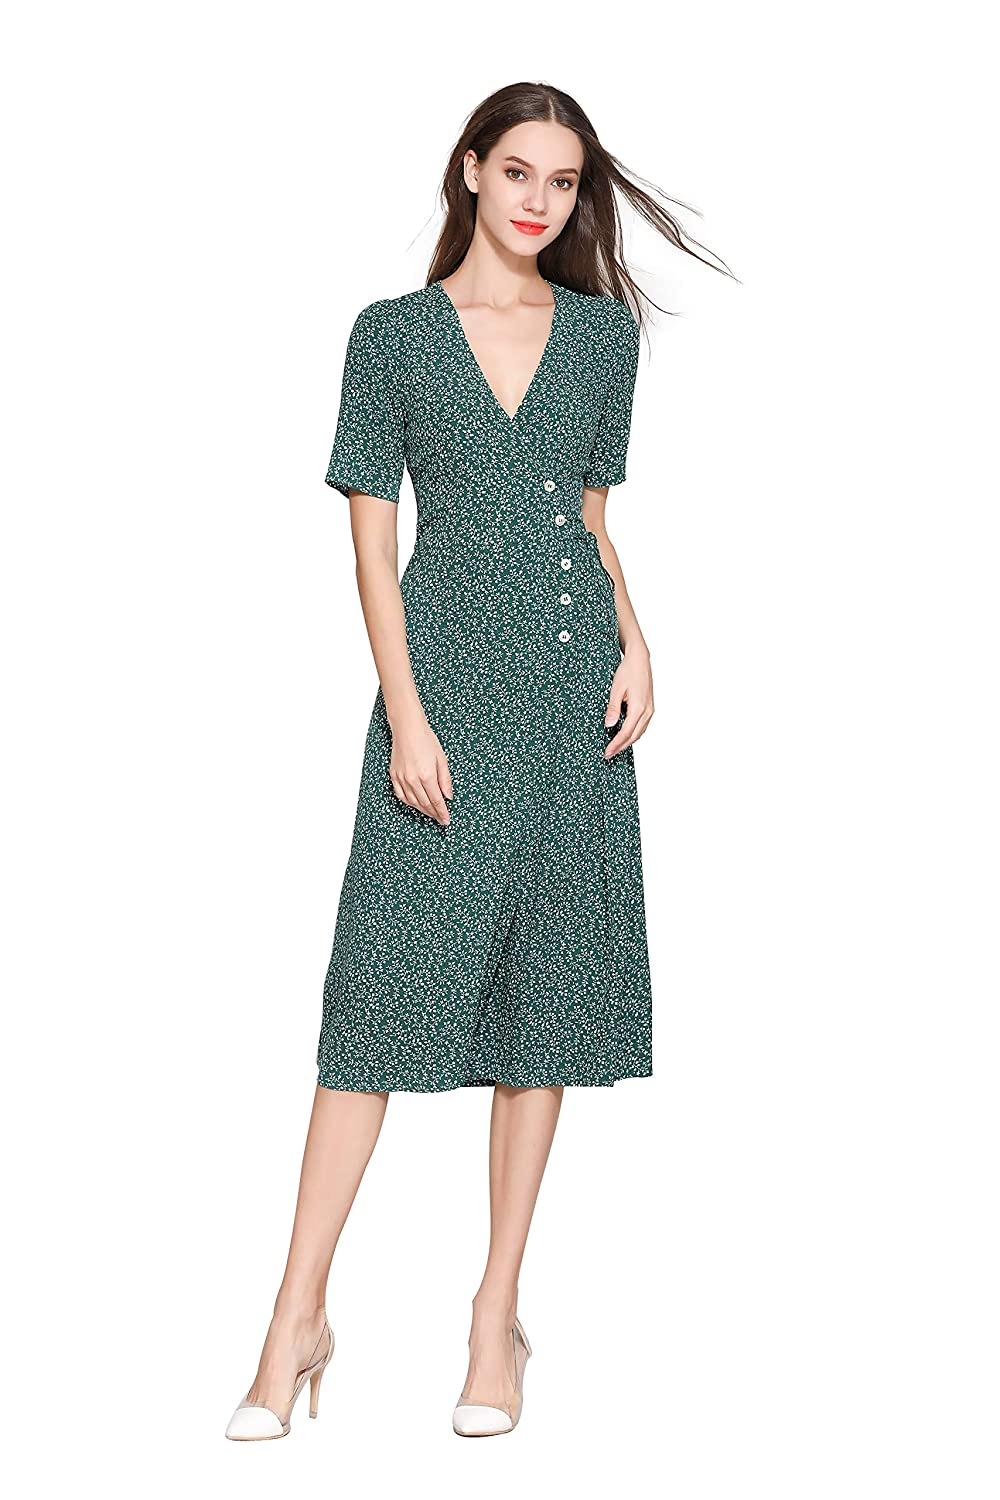 Swing Dance Clothing You Can Dance In Little Smily Womens Vintage Small Floral V Neck Midi Wrap Dress Short Sleeve $39.90 AT vintagedancer.com